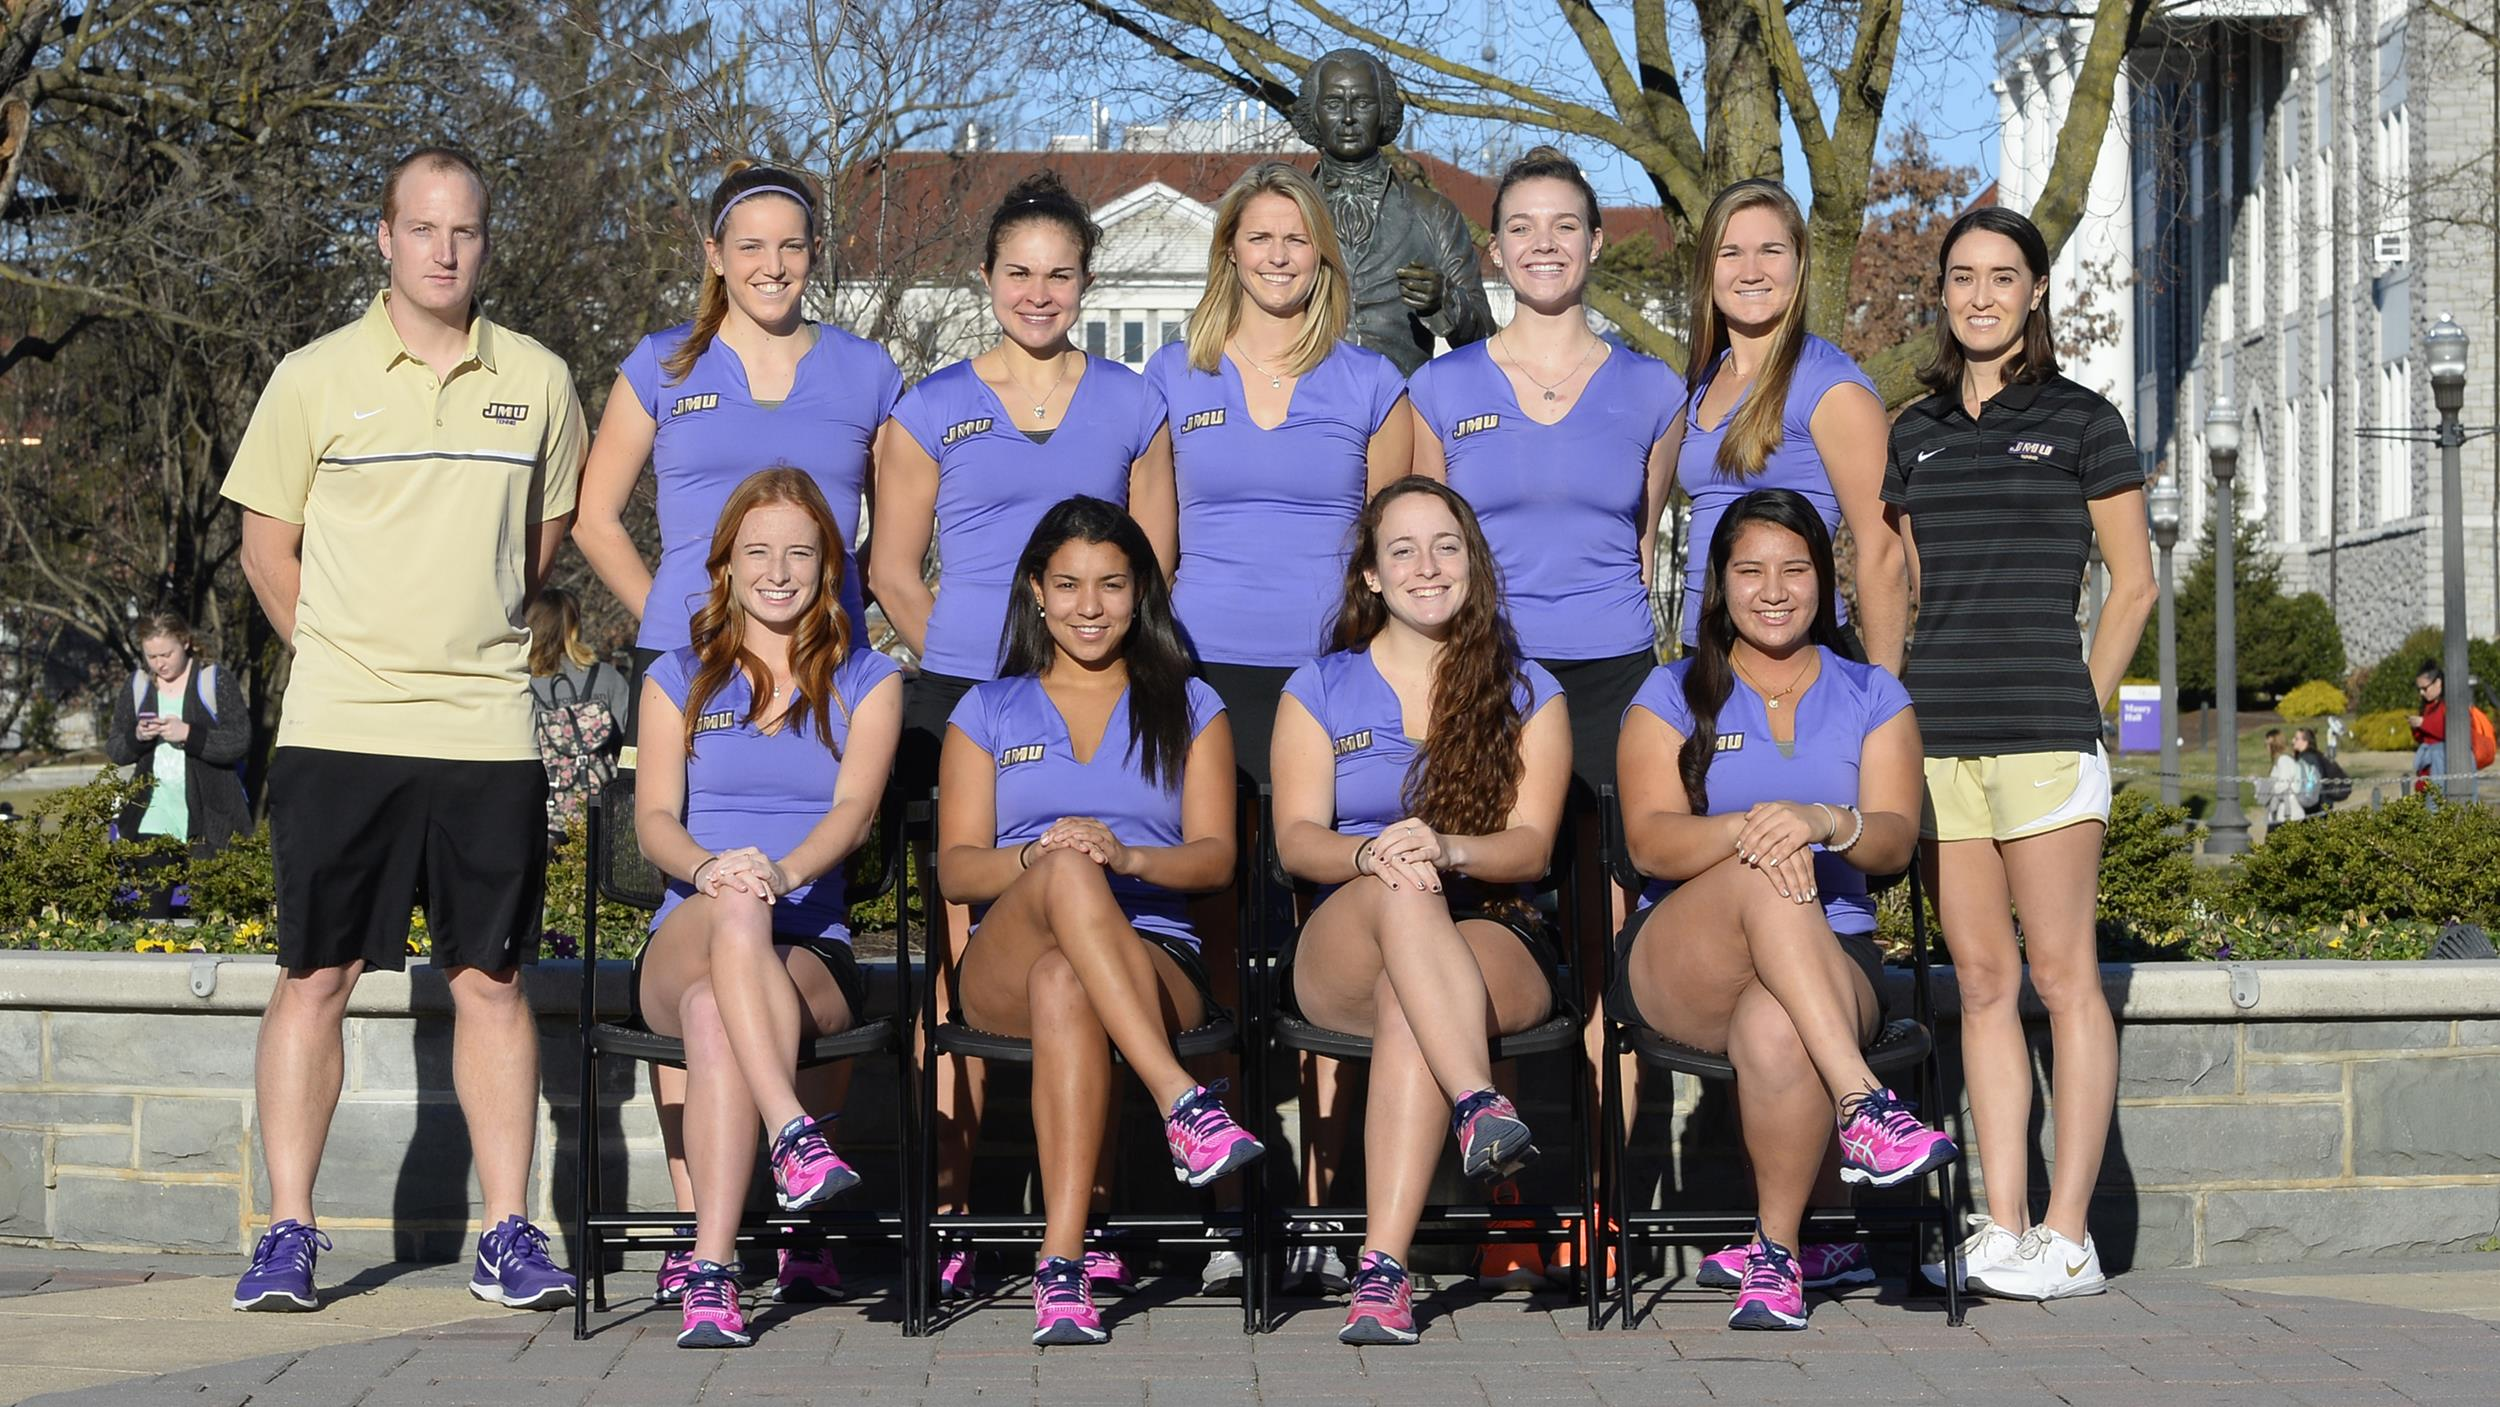 Women's Tennis: JMU Earns ITA All-Academic Honor, Two Dukes Scholar Athletes)